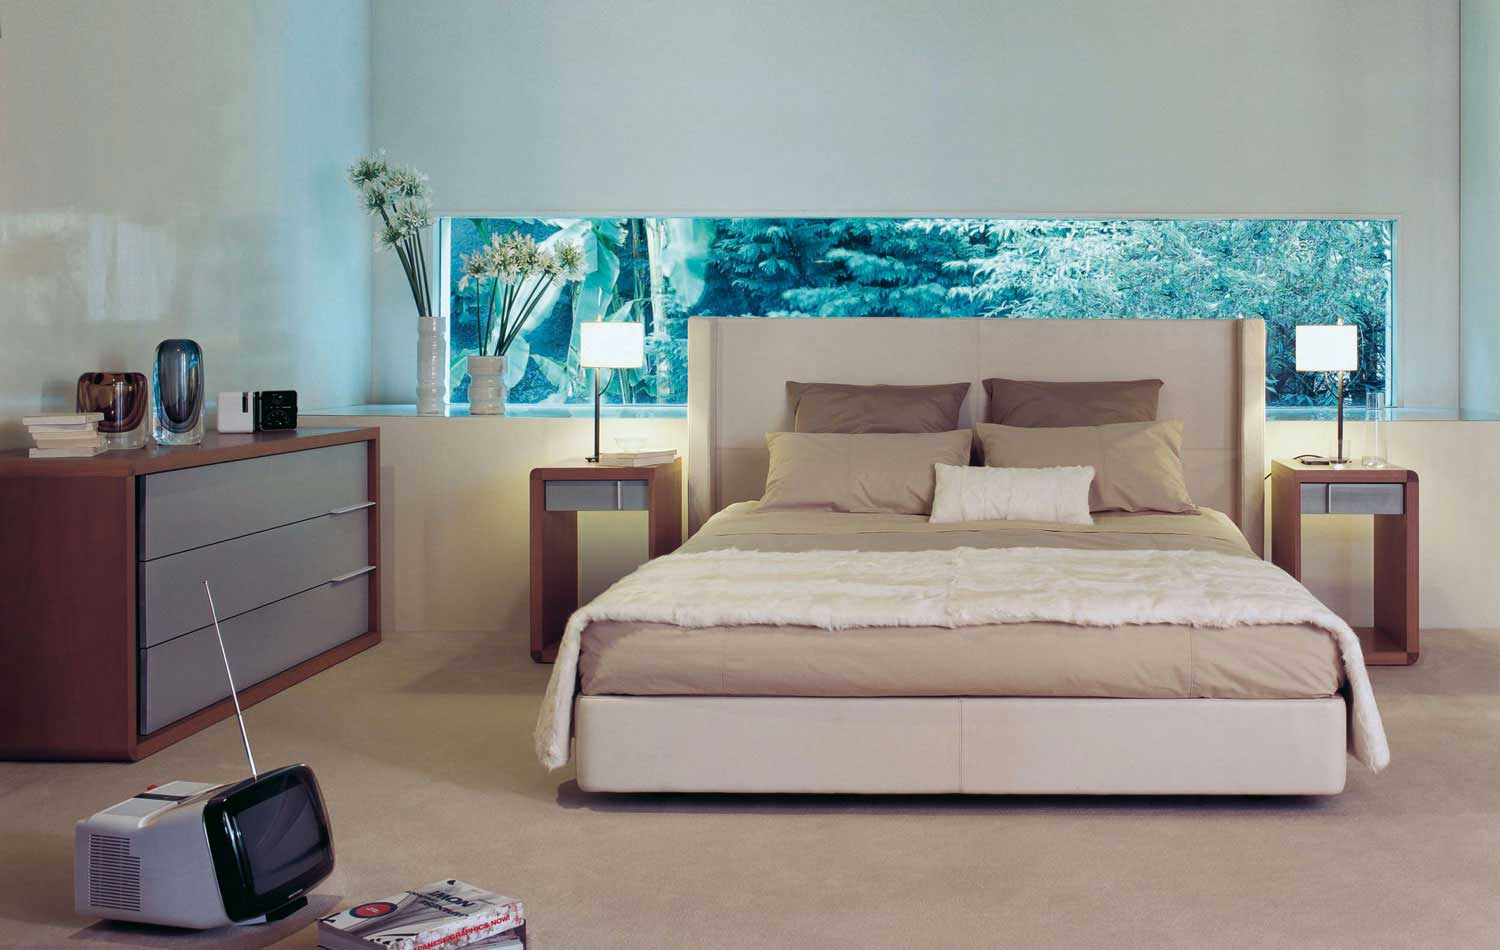 Bedrooms from roche bobois for Como decorar un dormitorio